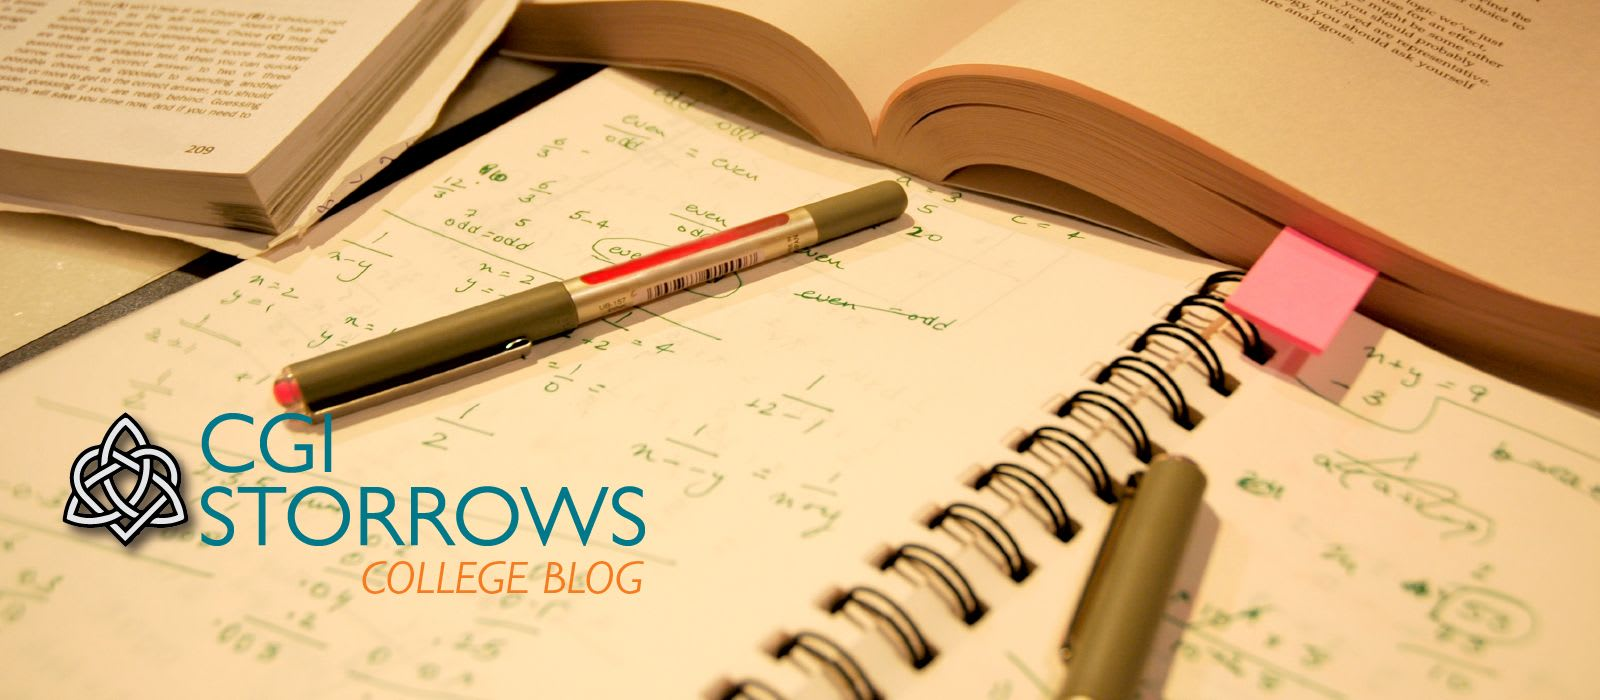 Storrows Blog- Exams and Assignments by Megan Dempsey